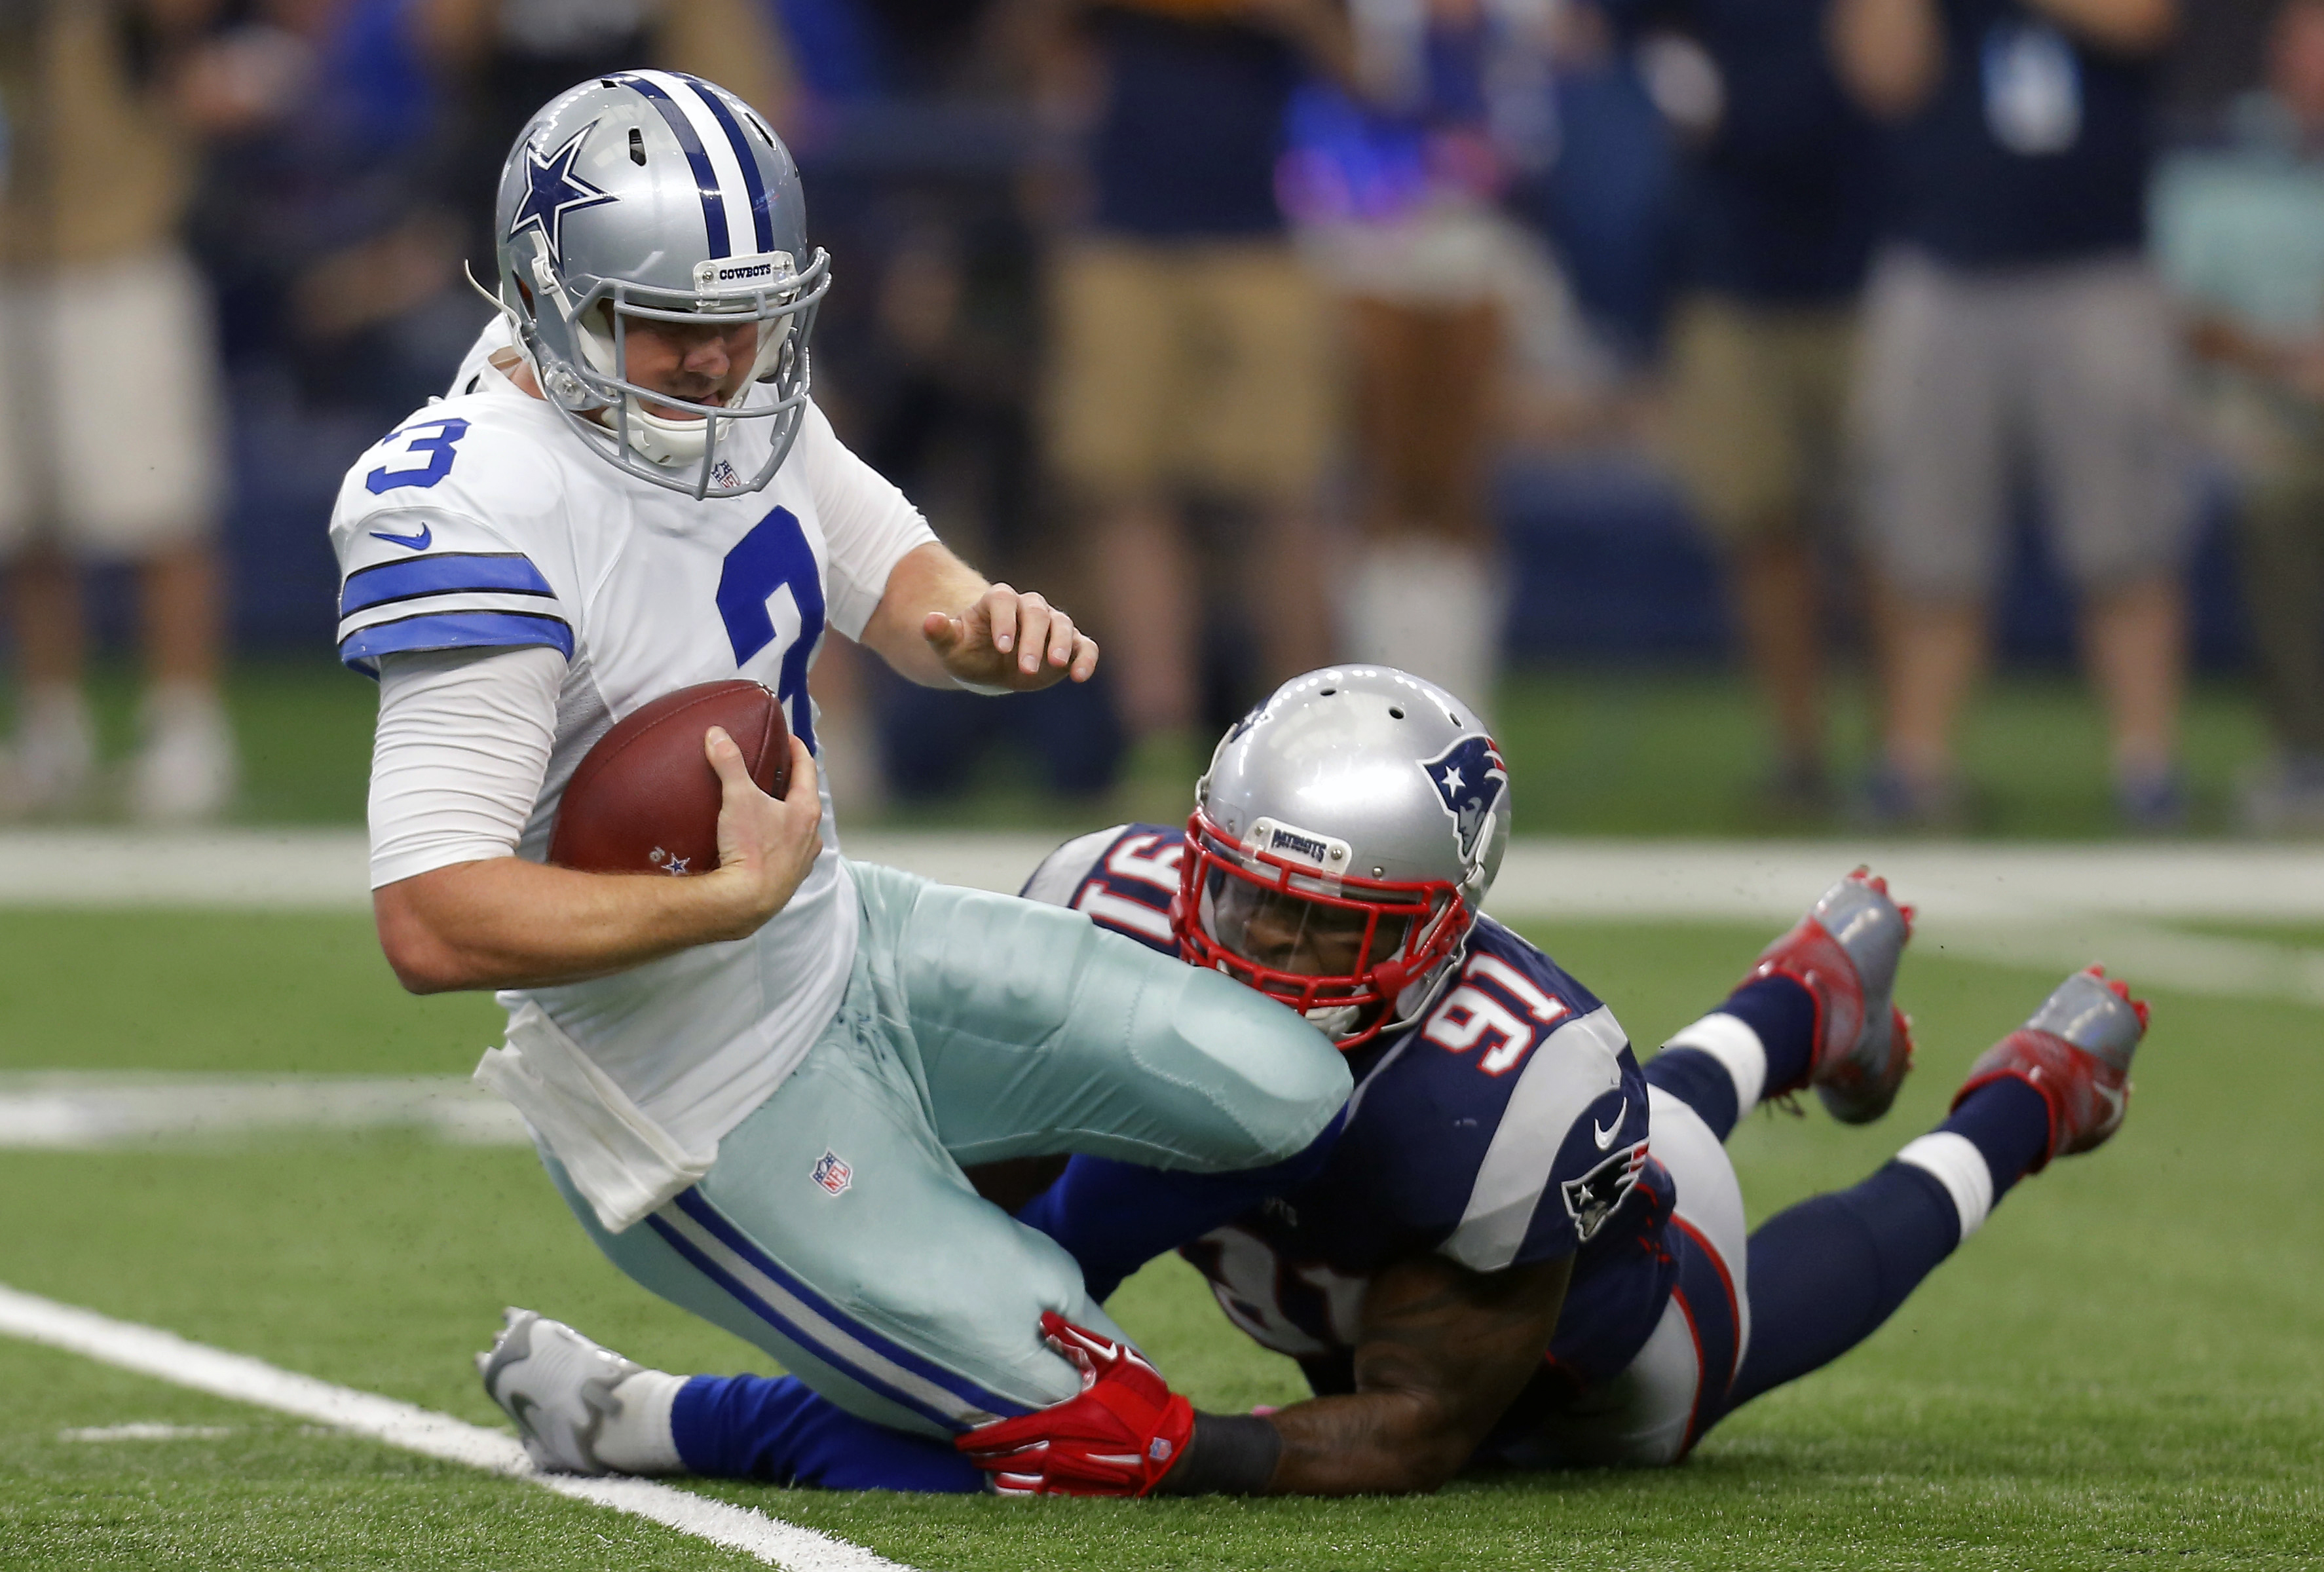 Dallas Cowboys' Brandon Weeden (3) is sacked by New England Patriots' Jamie Collins (91) during the first quarter of an NFL football game, Sunday, Oct. 11, 2015, in Arlington, Texas. (AP Photo/Brandon Wade)